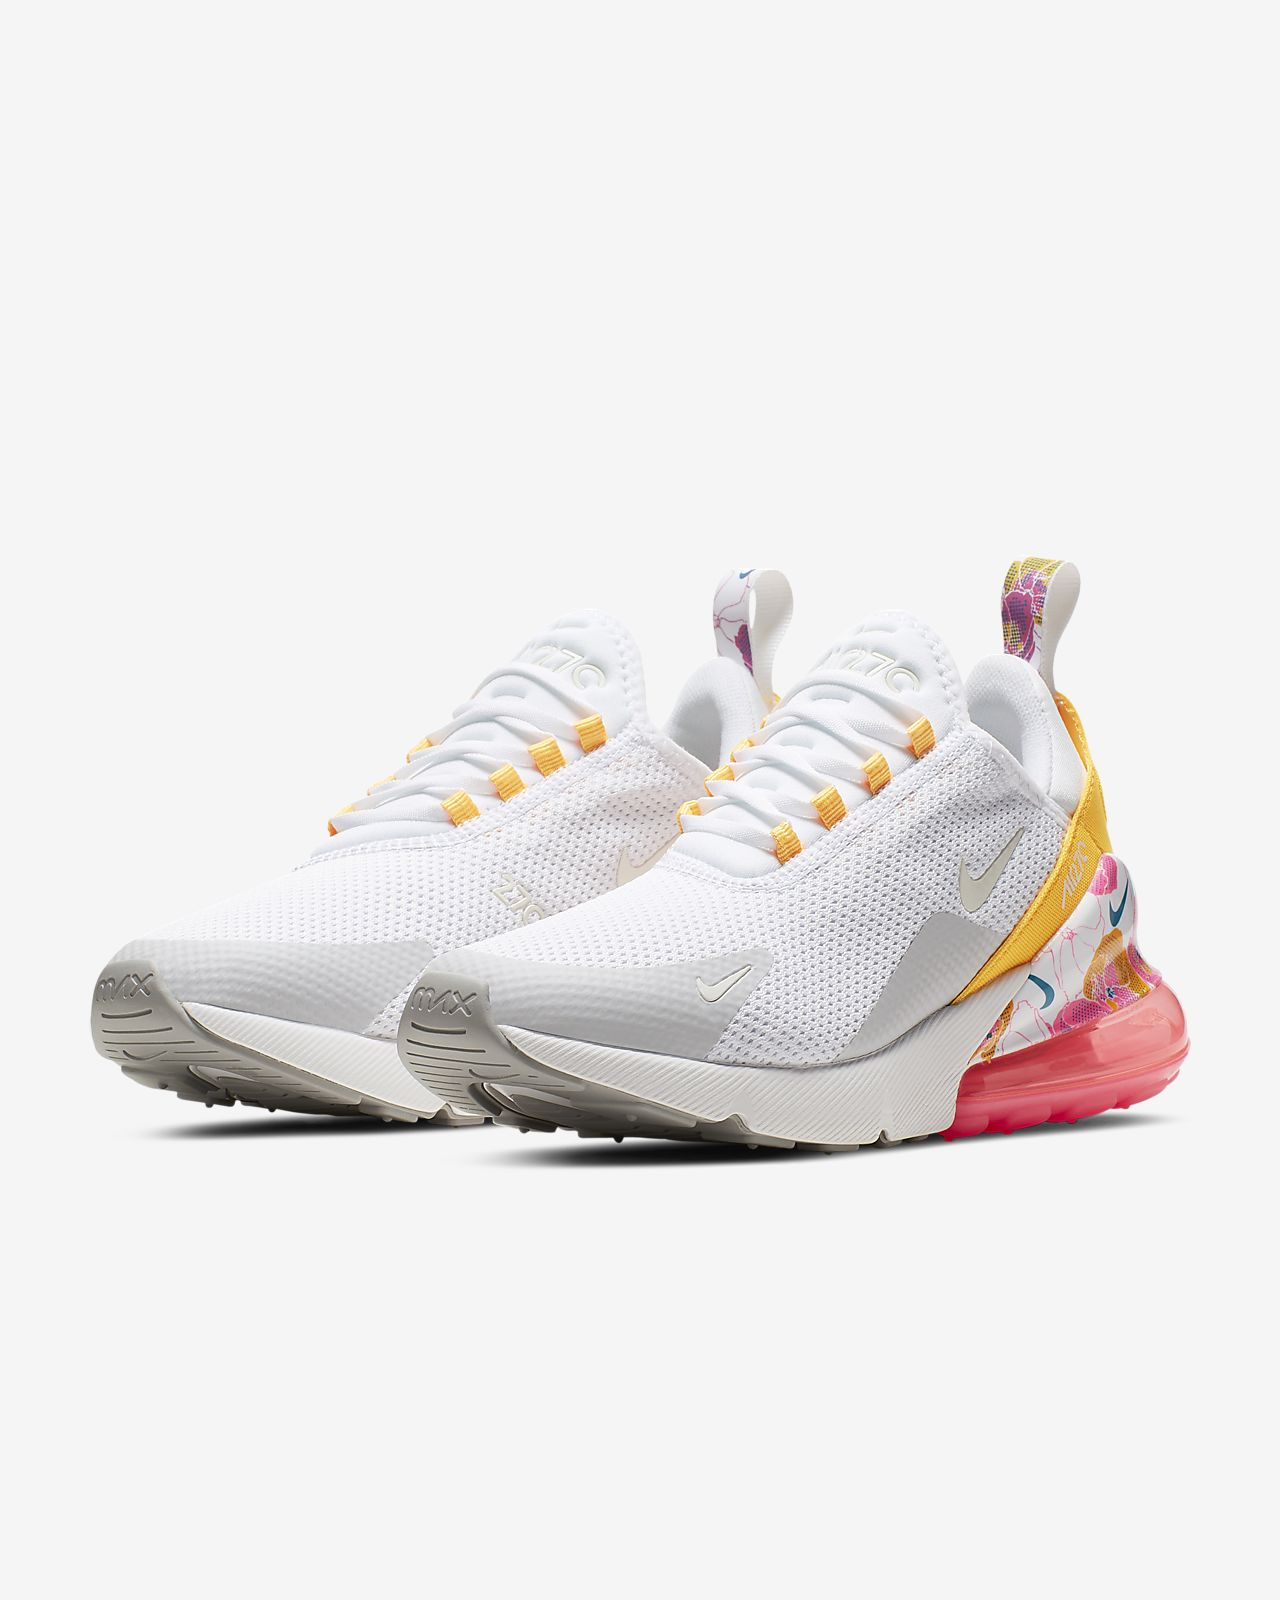 the latest 29a8f 344e8 ... Nike Air Max 270 SE Floral Women s Shoe